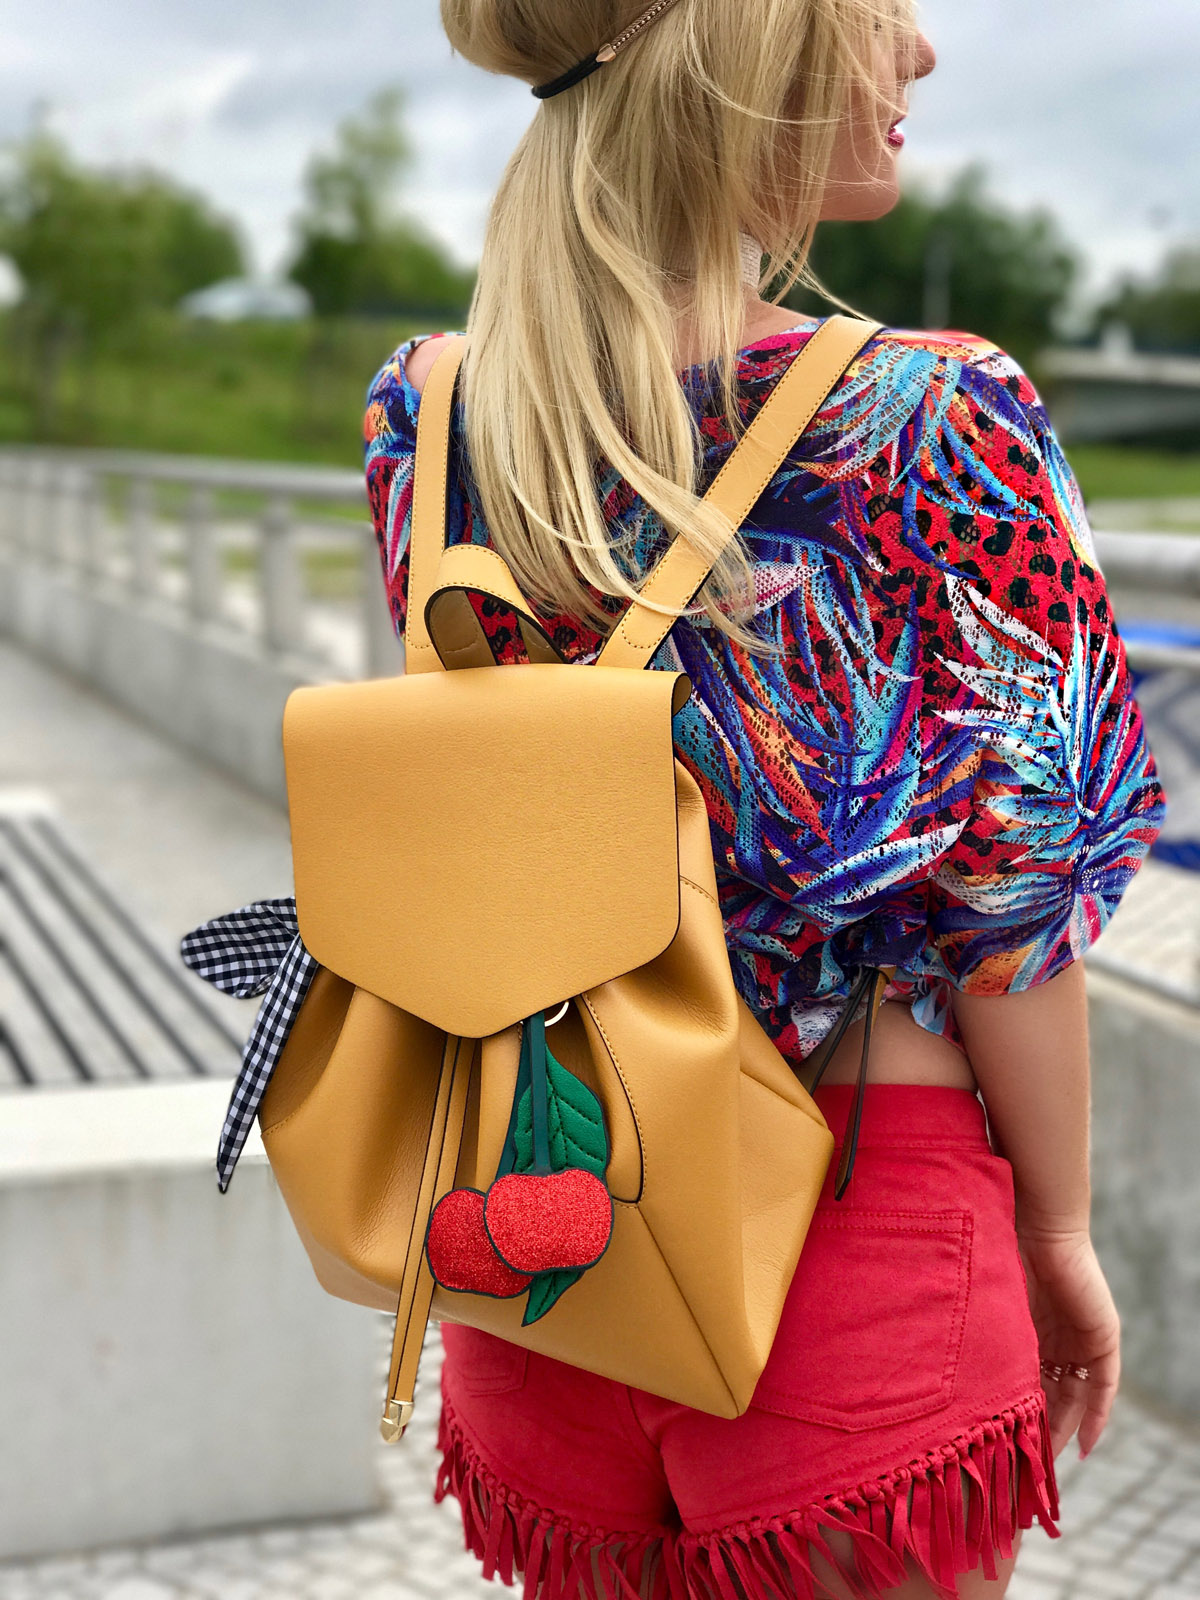 cute-backpack-festival-backpack-festival-outfit-ibiza-outfit-backpack-outfit